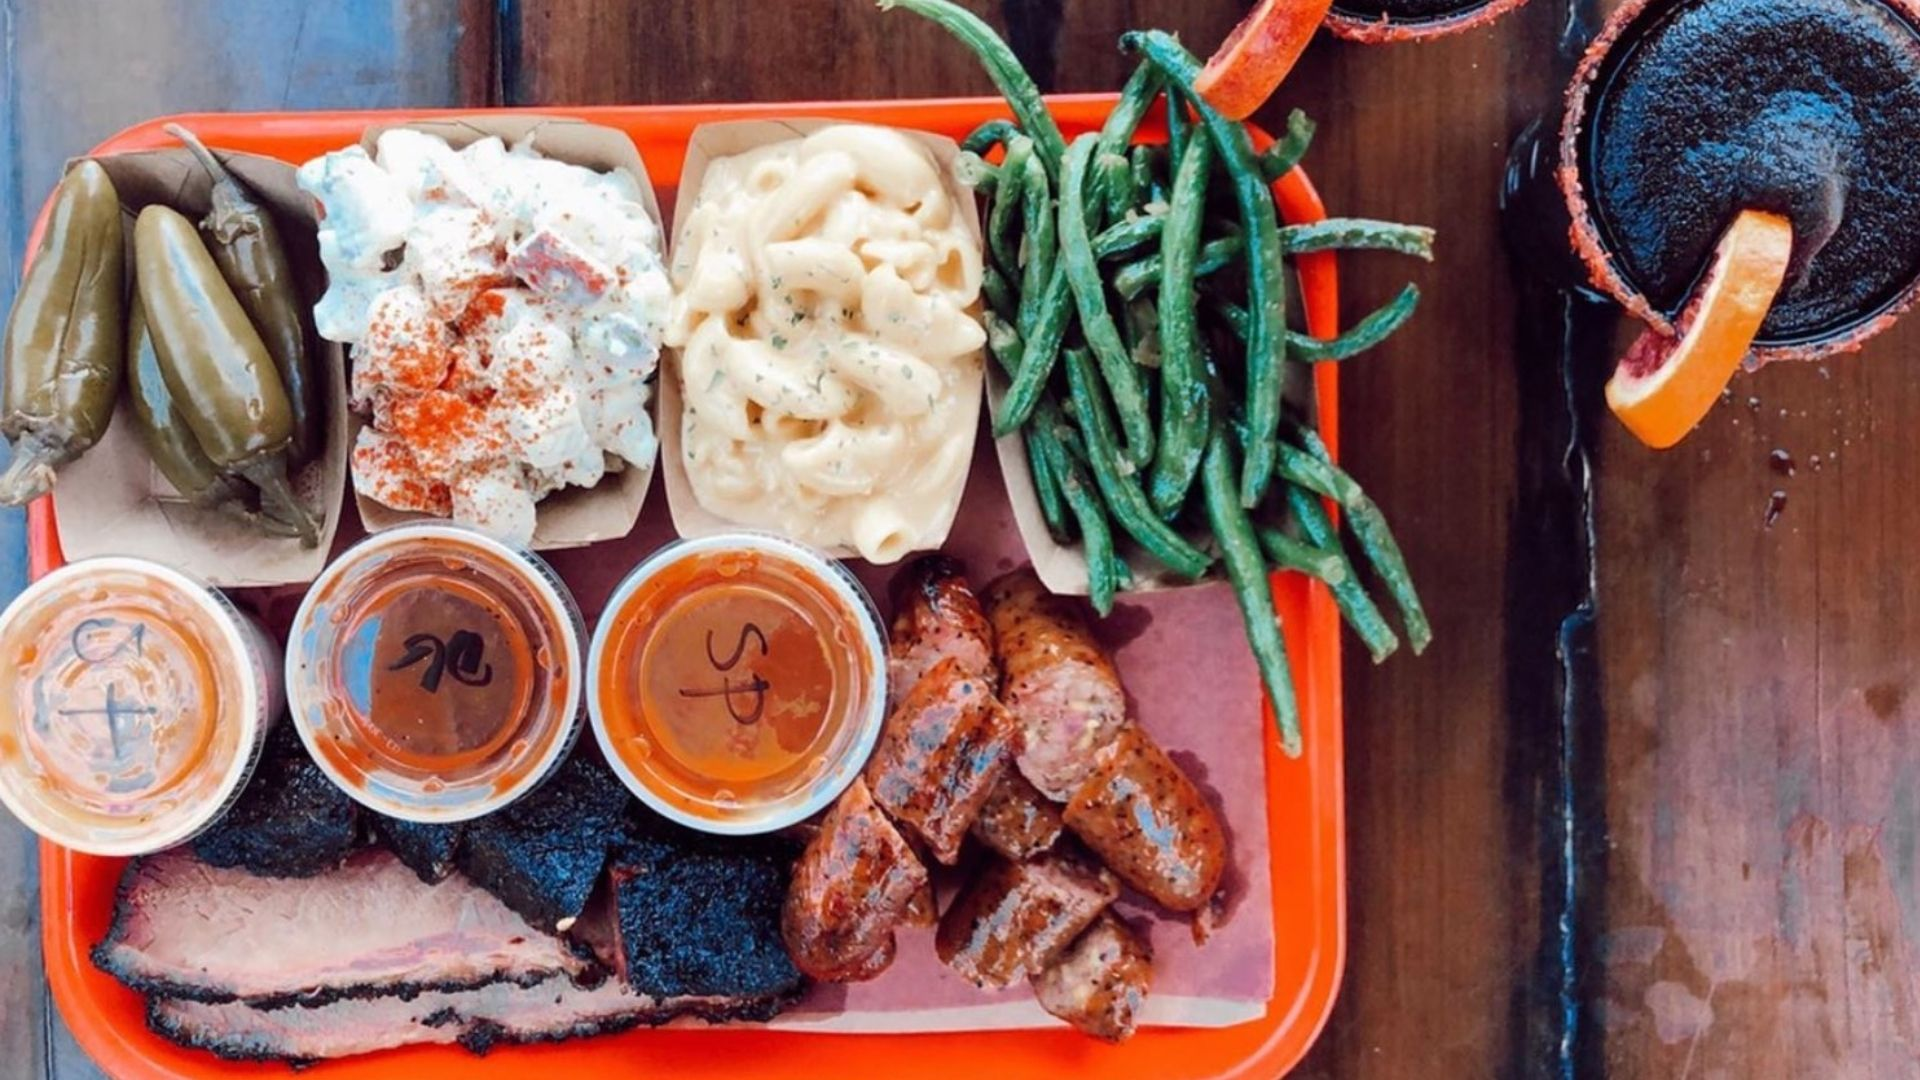 Image of Terry Black's Barbecue